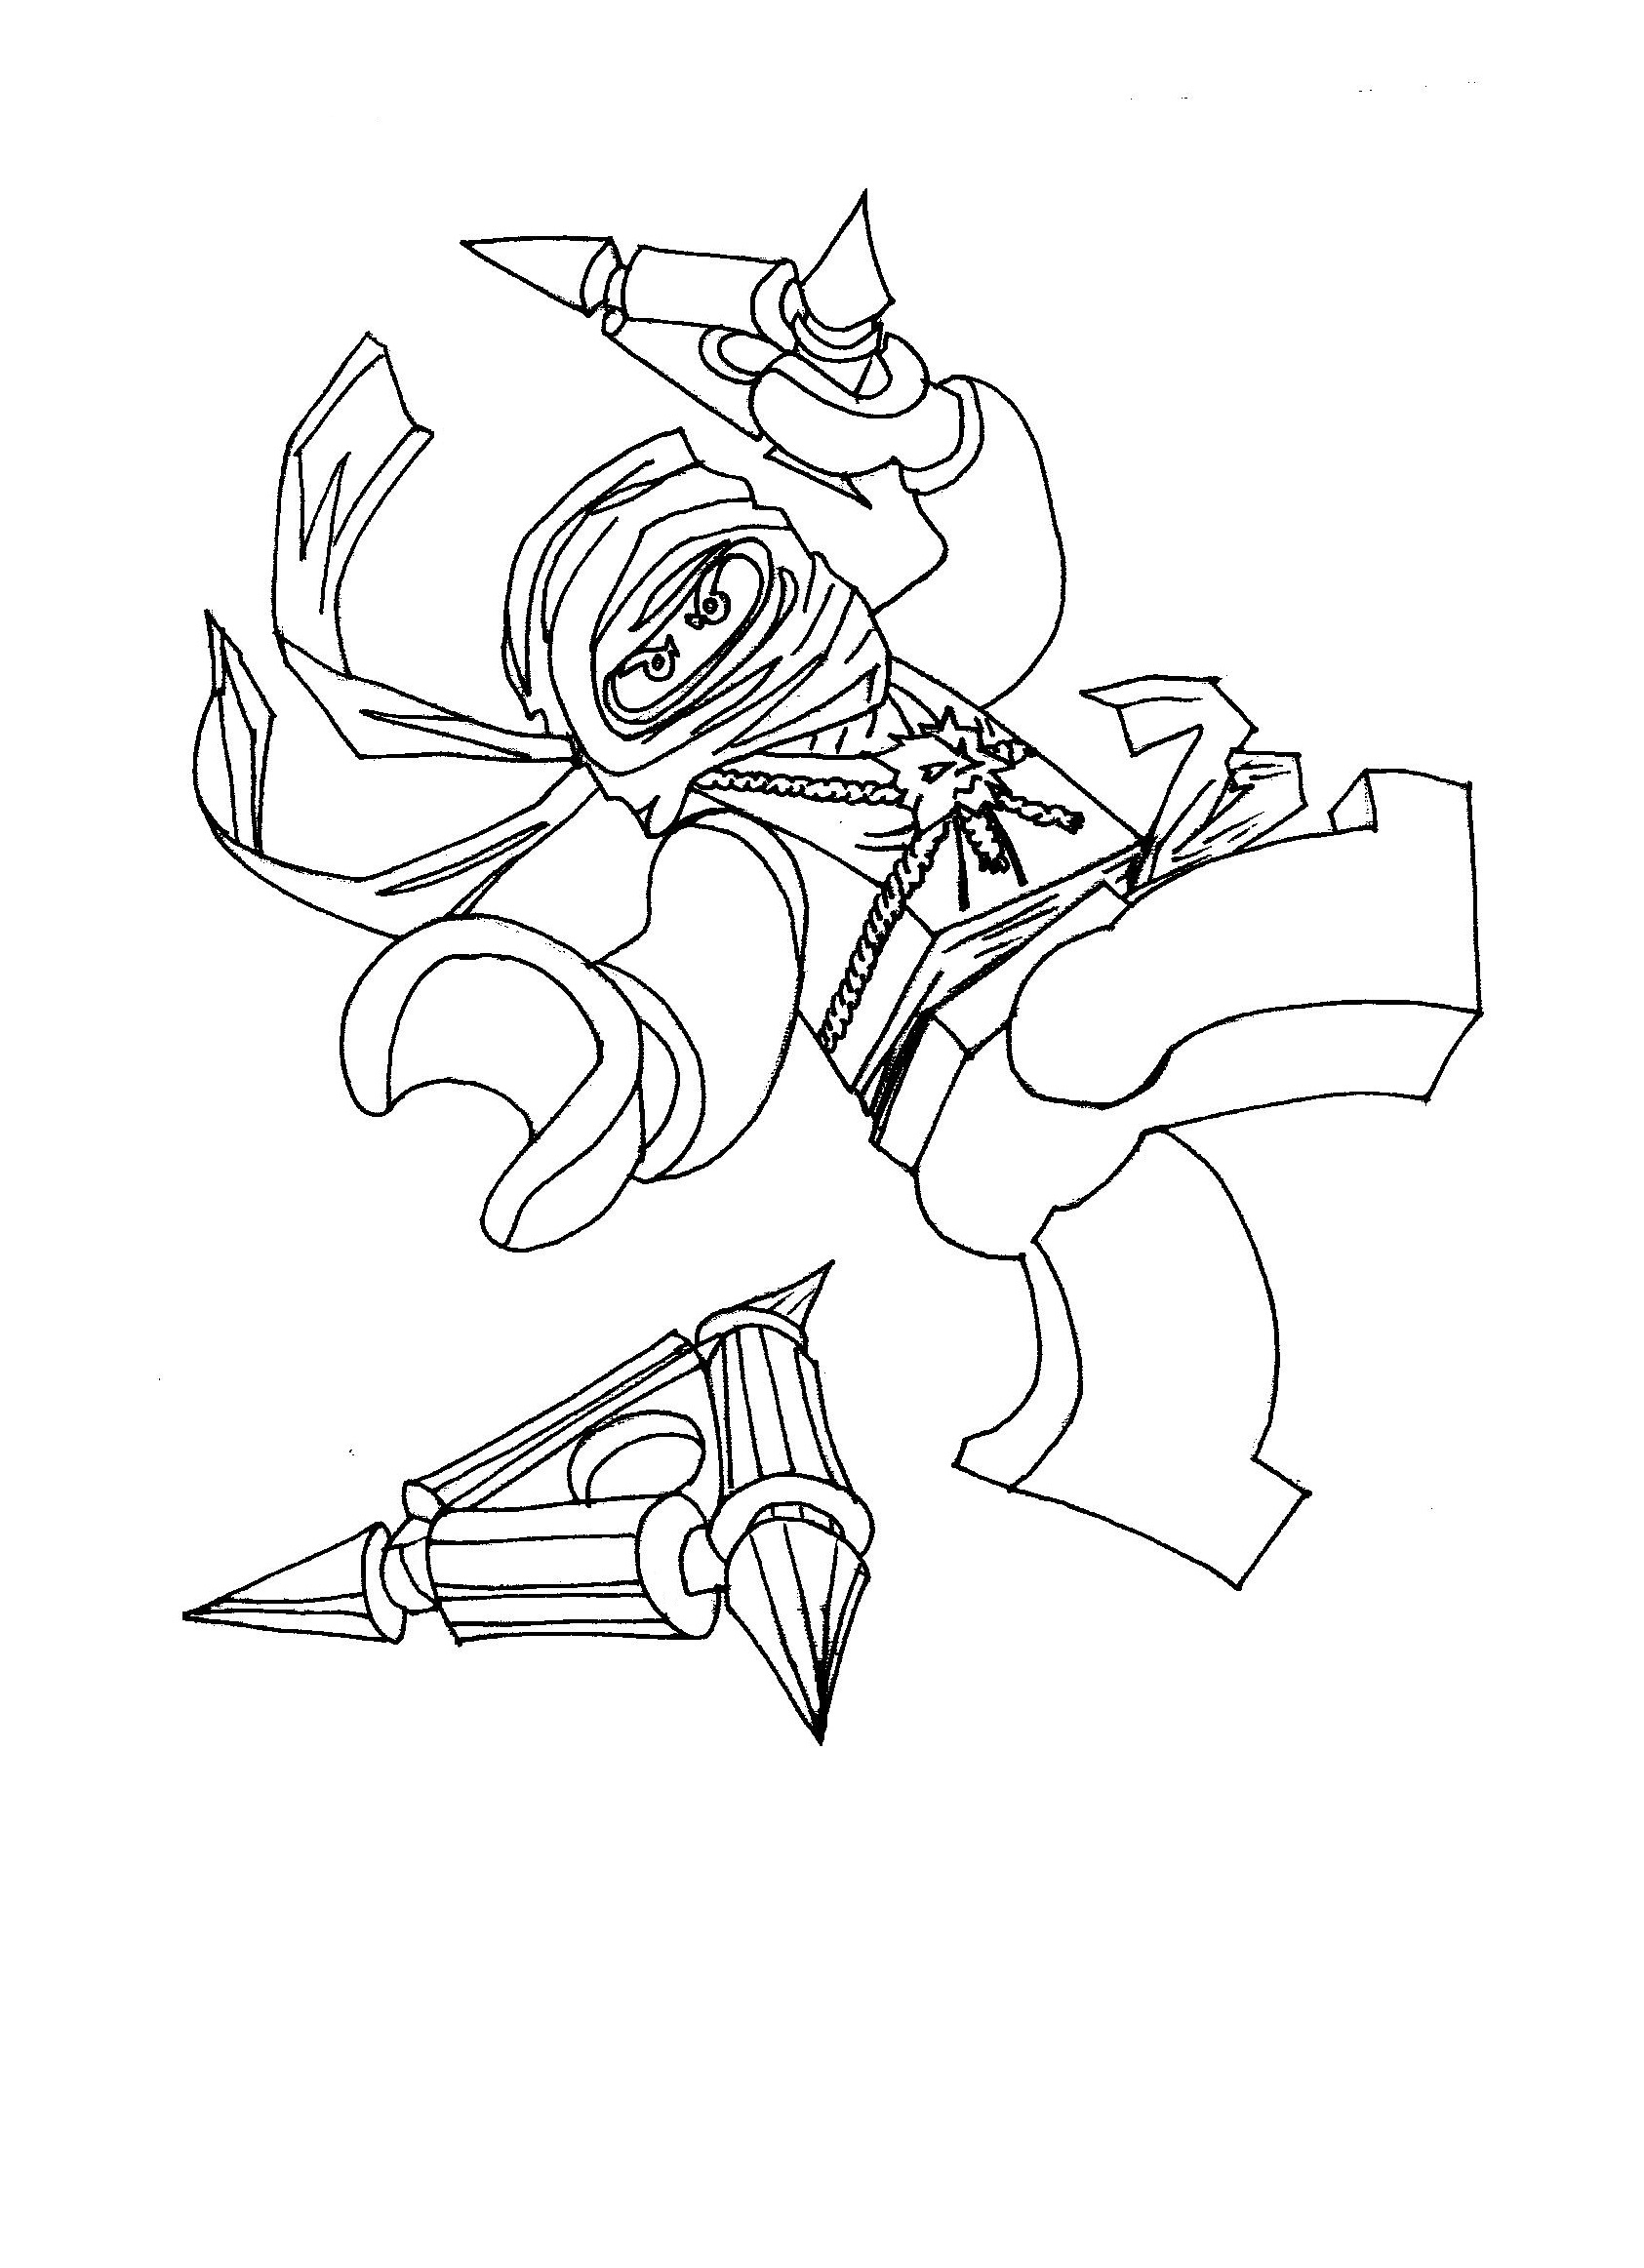 Free Printable Ninjago Coloring Pages For Kids Printable Ninjago Coloring Pages